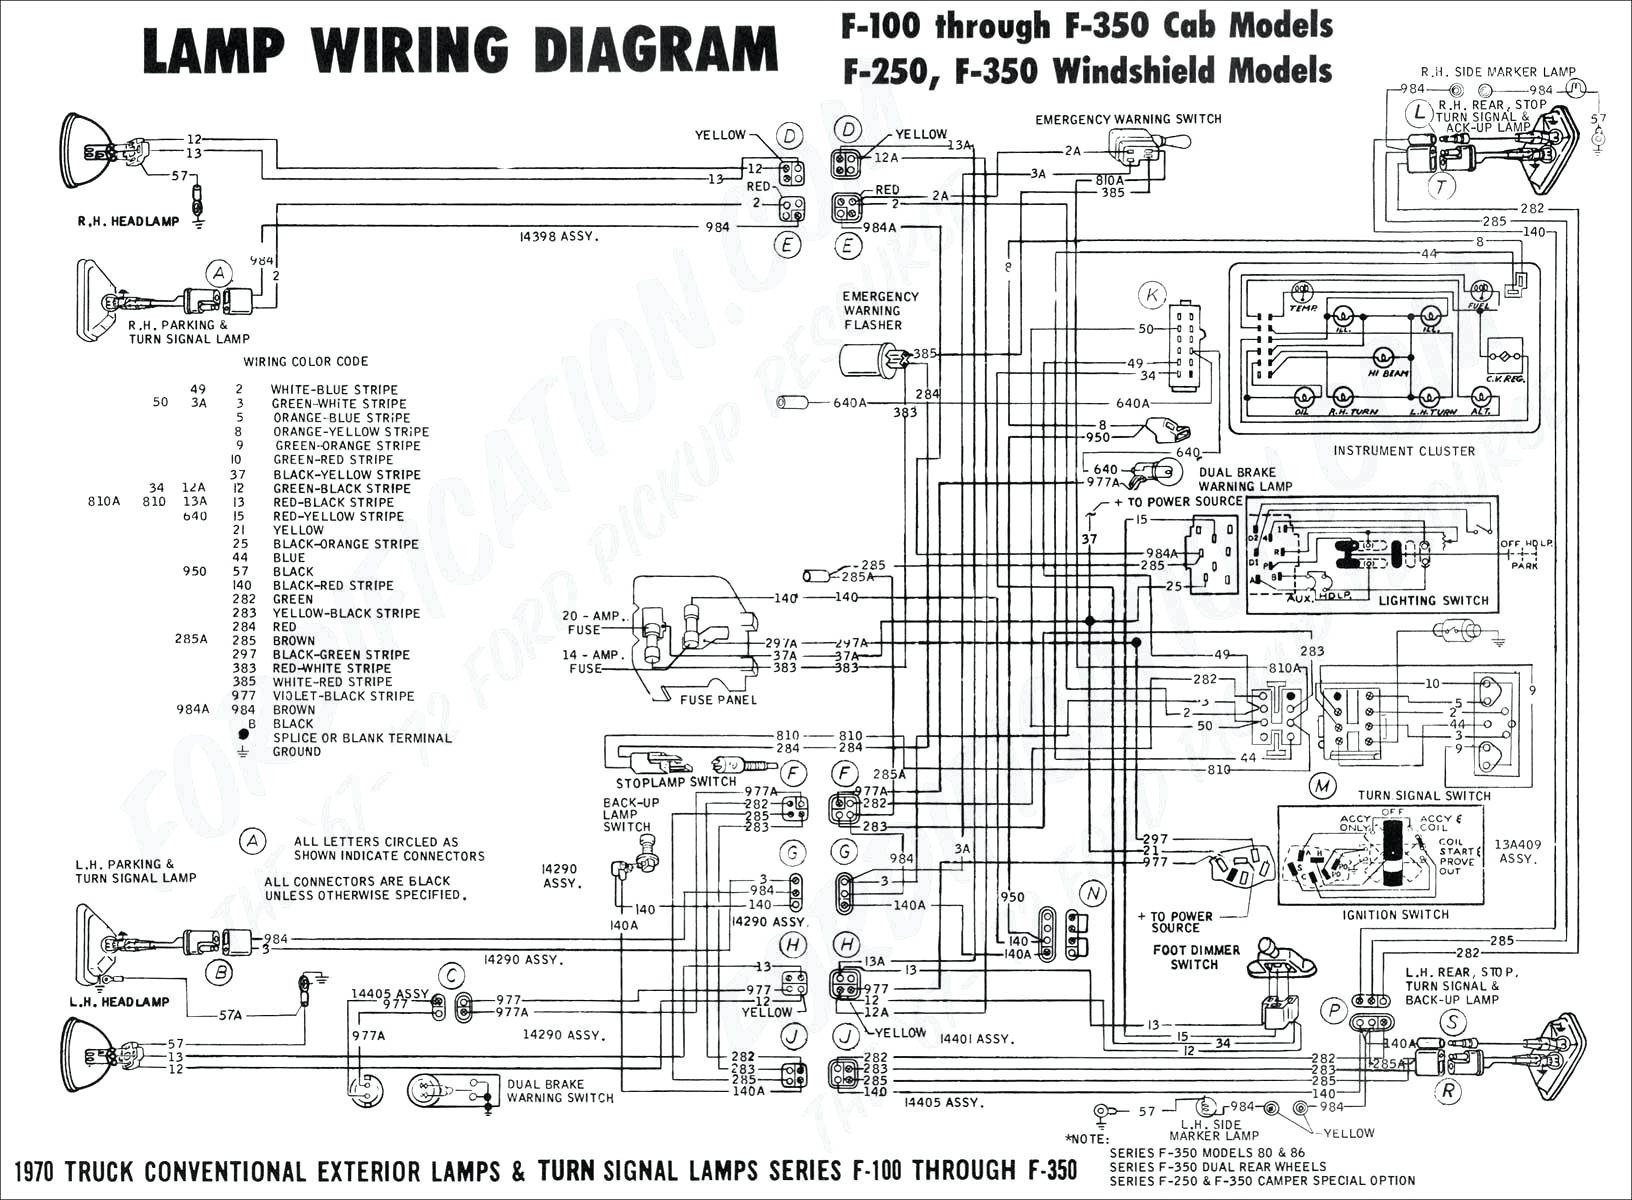 Electric Motor Control Circuit Diagrams Motor Repalcement Parts And